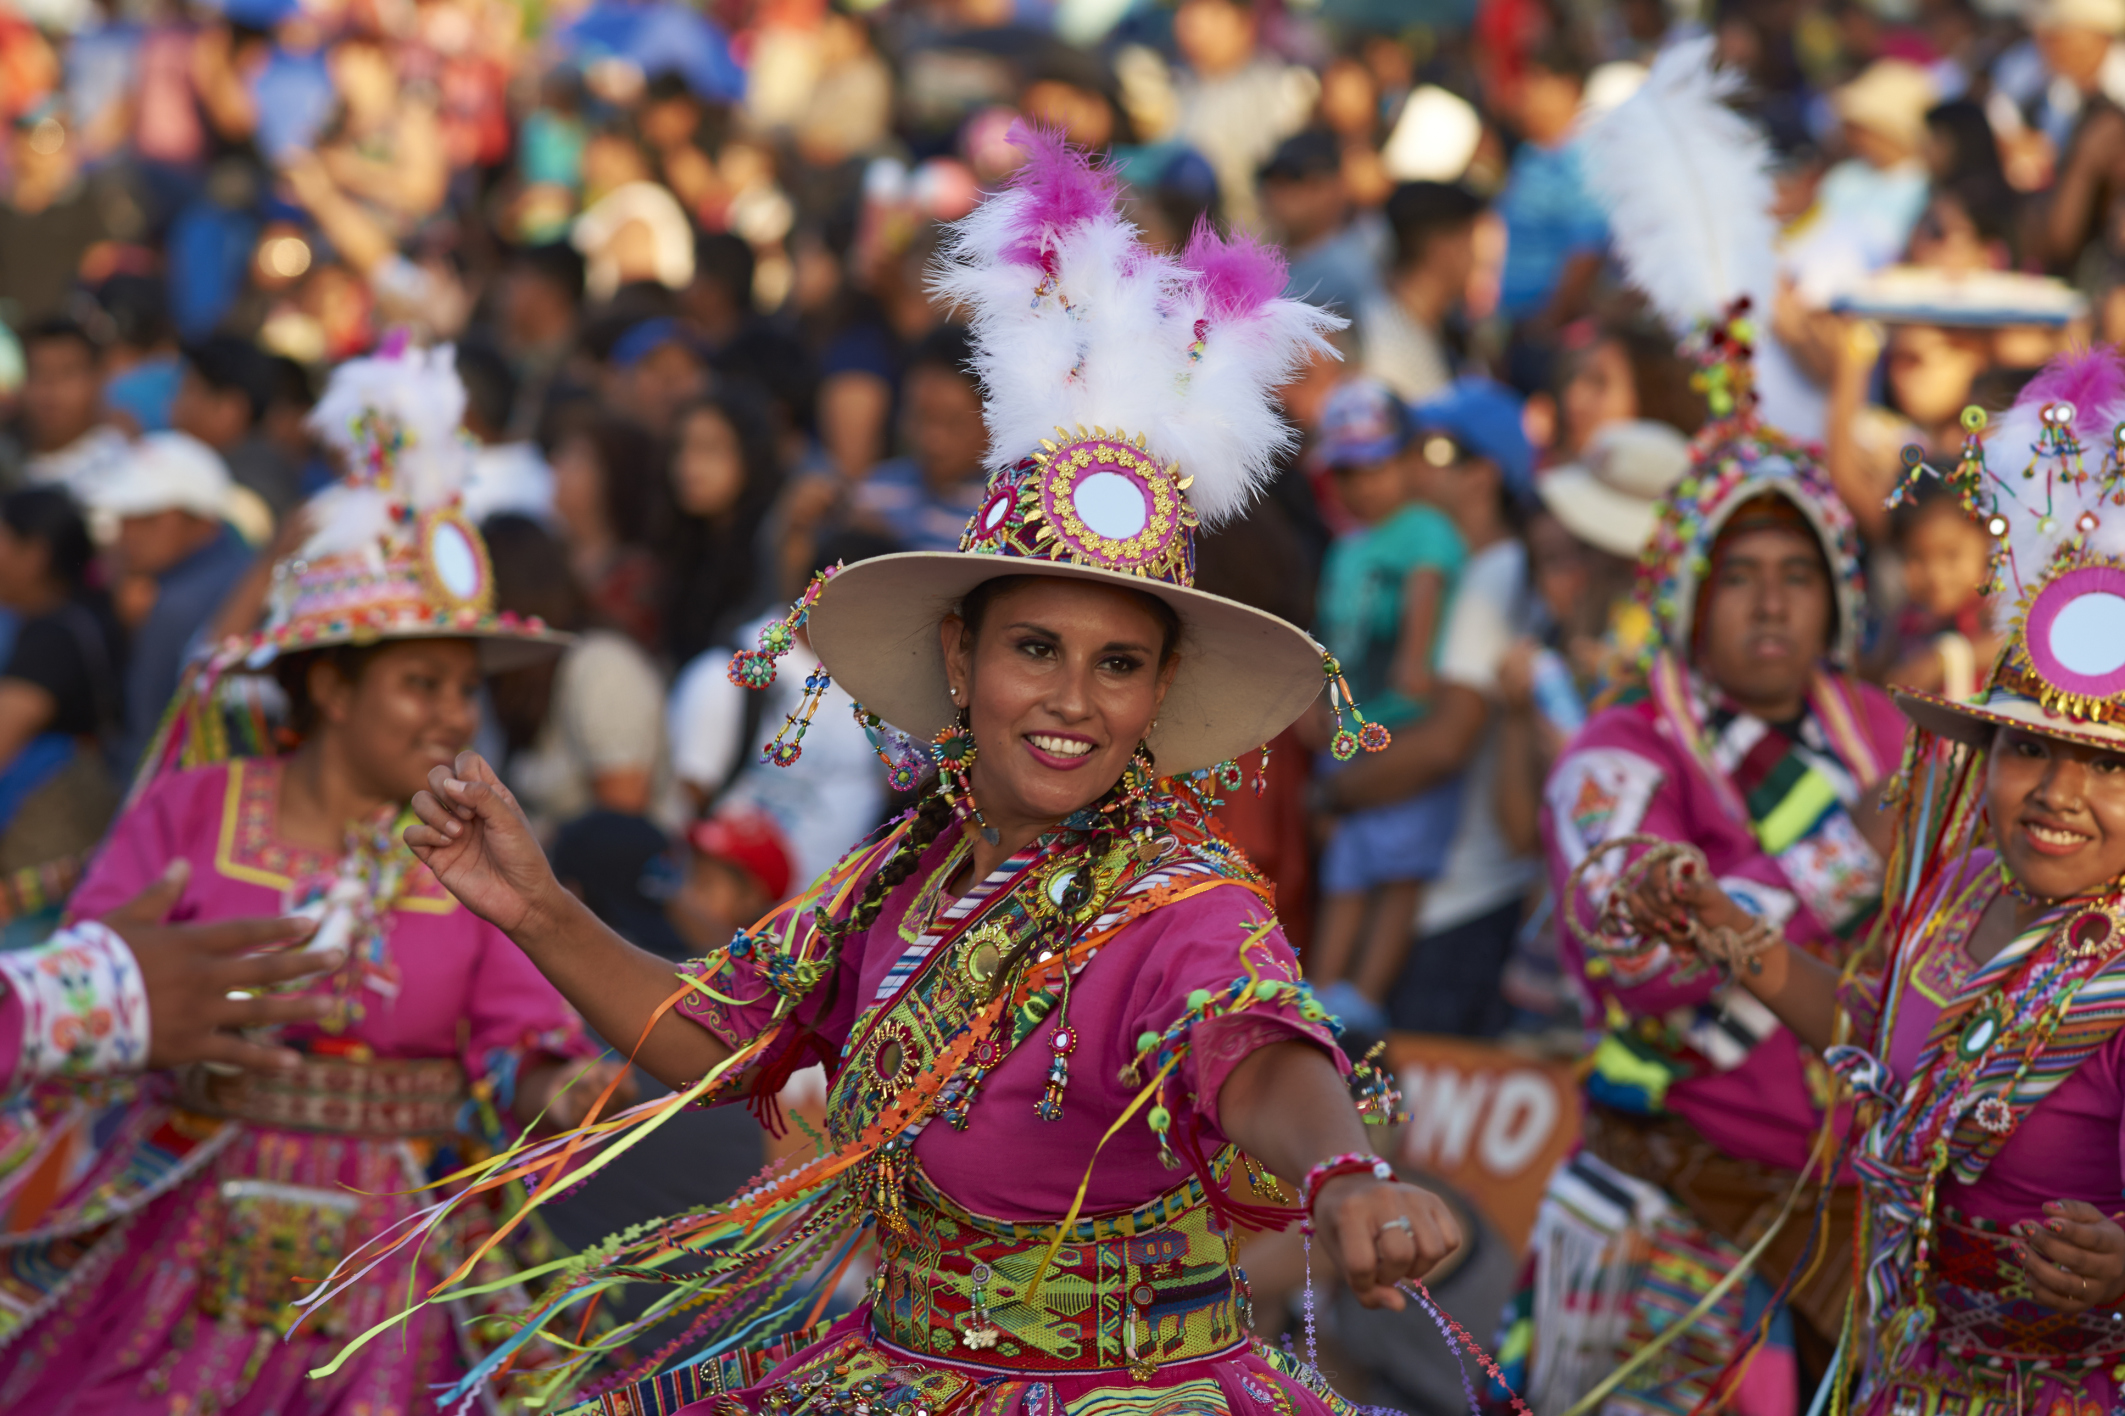 Watch a traditional Tinku dance group in Bolivia